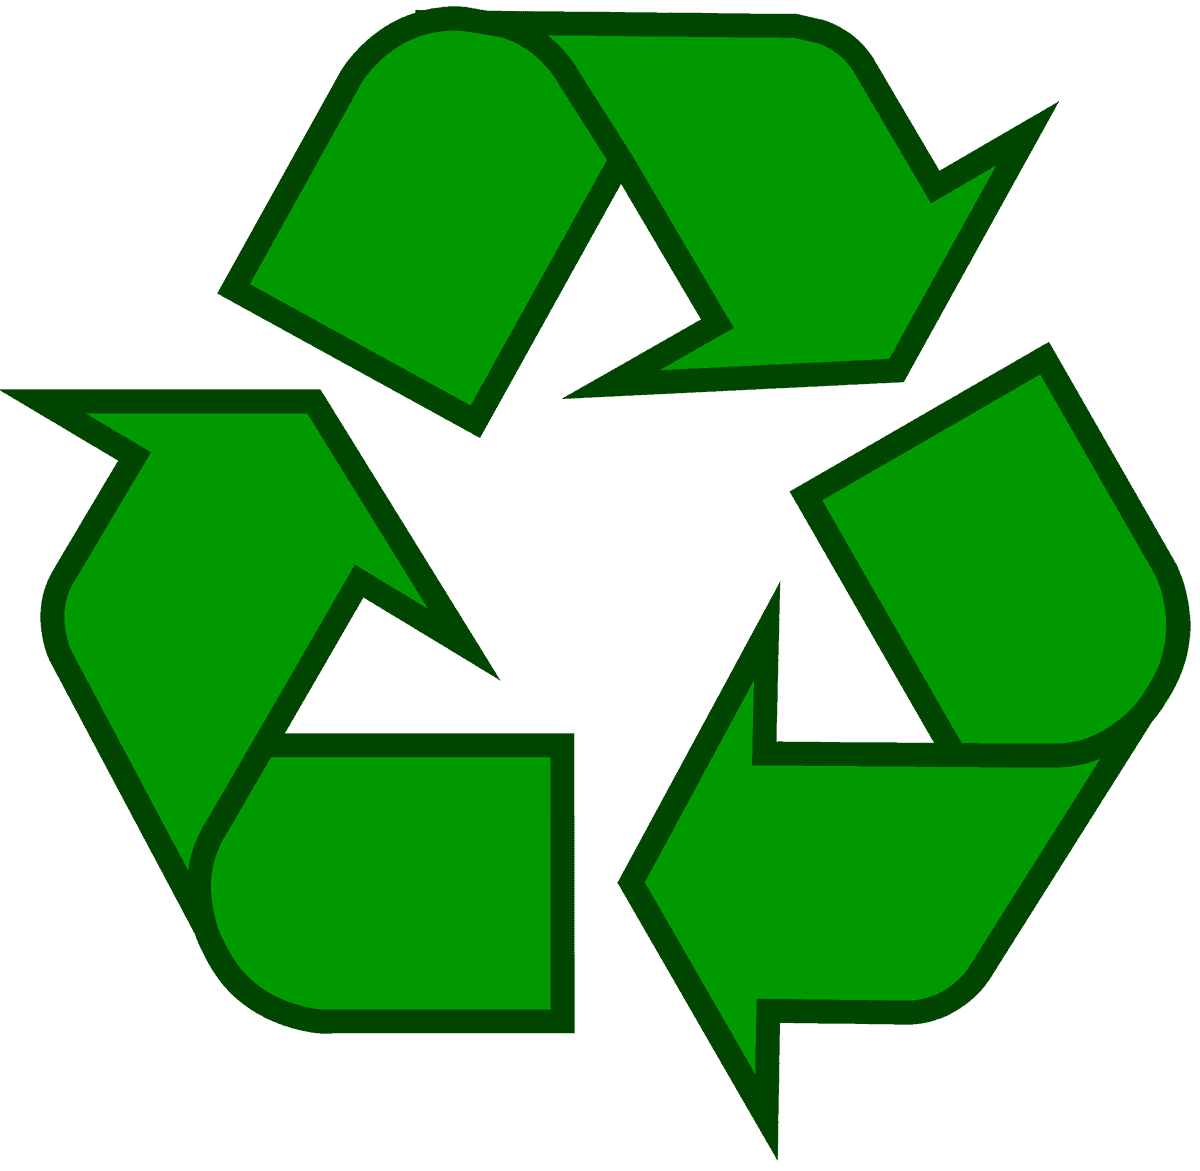 photograph regarding Recycle Signs Printable referred to as Recycling Logo - Obtain the Initial Recycle Brand